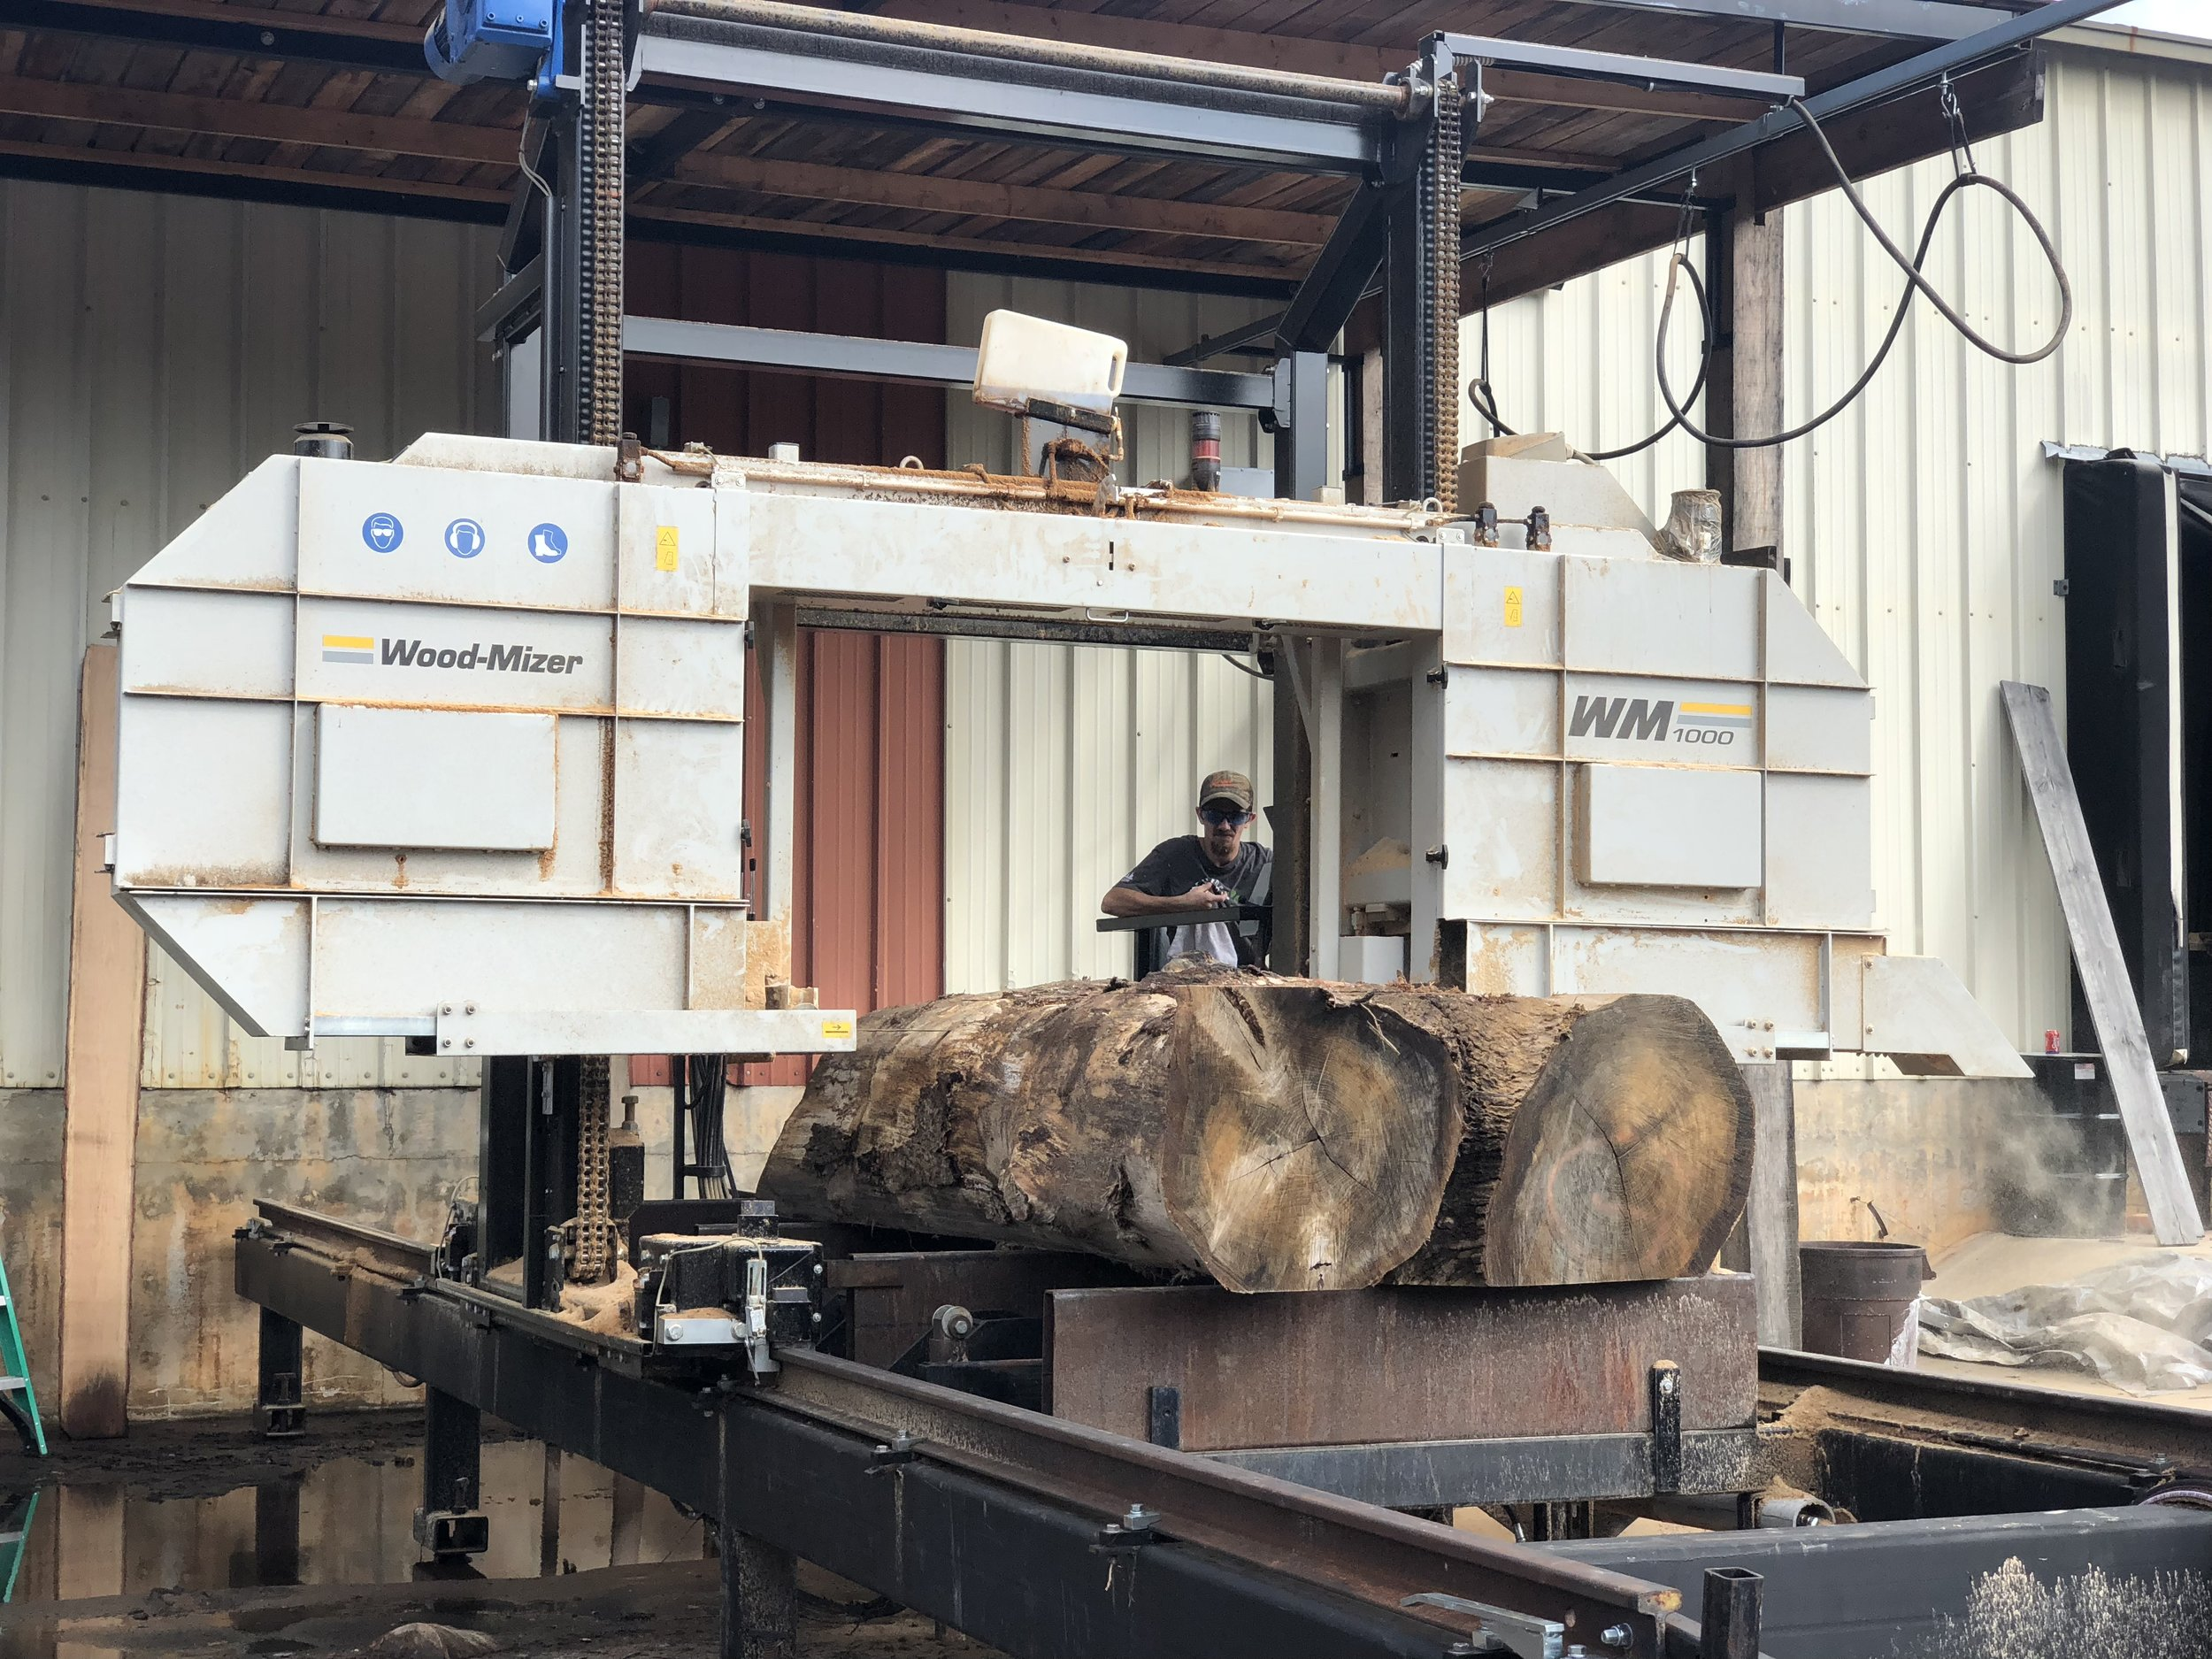 Each log is then milled into live edge slabs and boards for dimensional lumber over the course of two days…